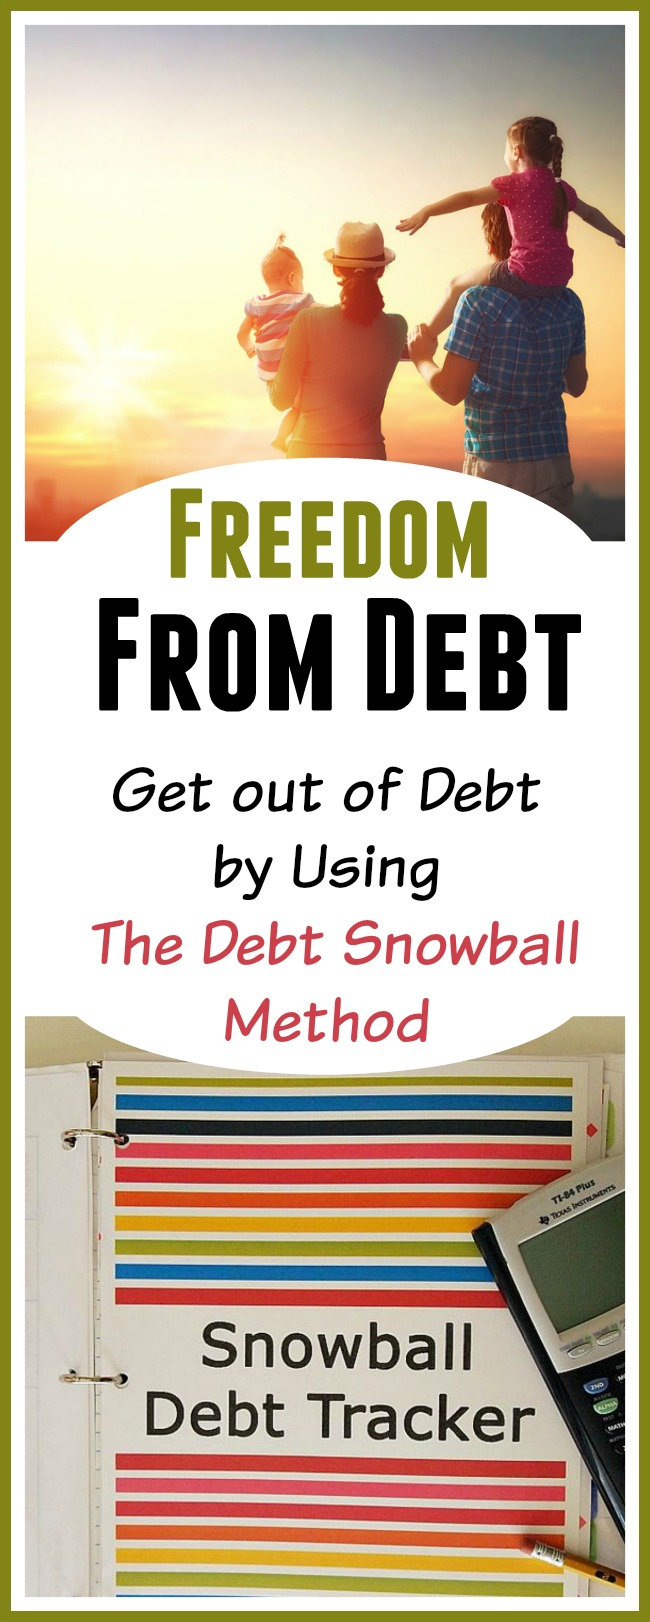 Get Out of Debt By Using The Debt Snowball Method - Are you trying to pay down debt but you're not getting anywhere? Consider using the debt snowball system to get rid of your debt for good. Here's how it works and also a list of Debt Snowball Calculators that you can use. | Budgeting | How to get out of debt | Paying off bills